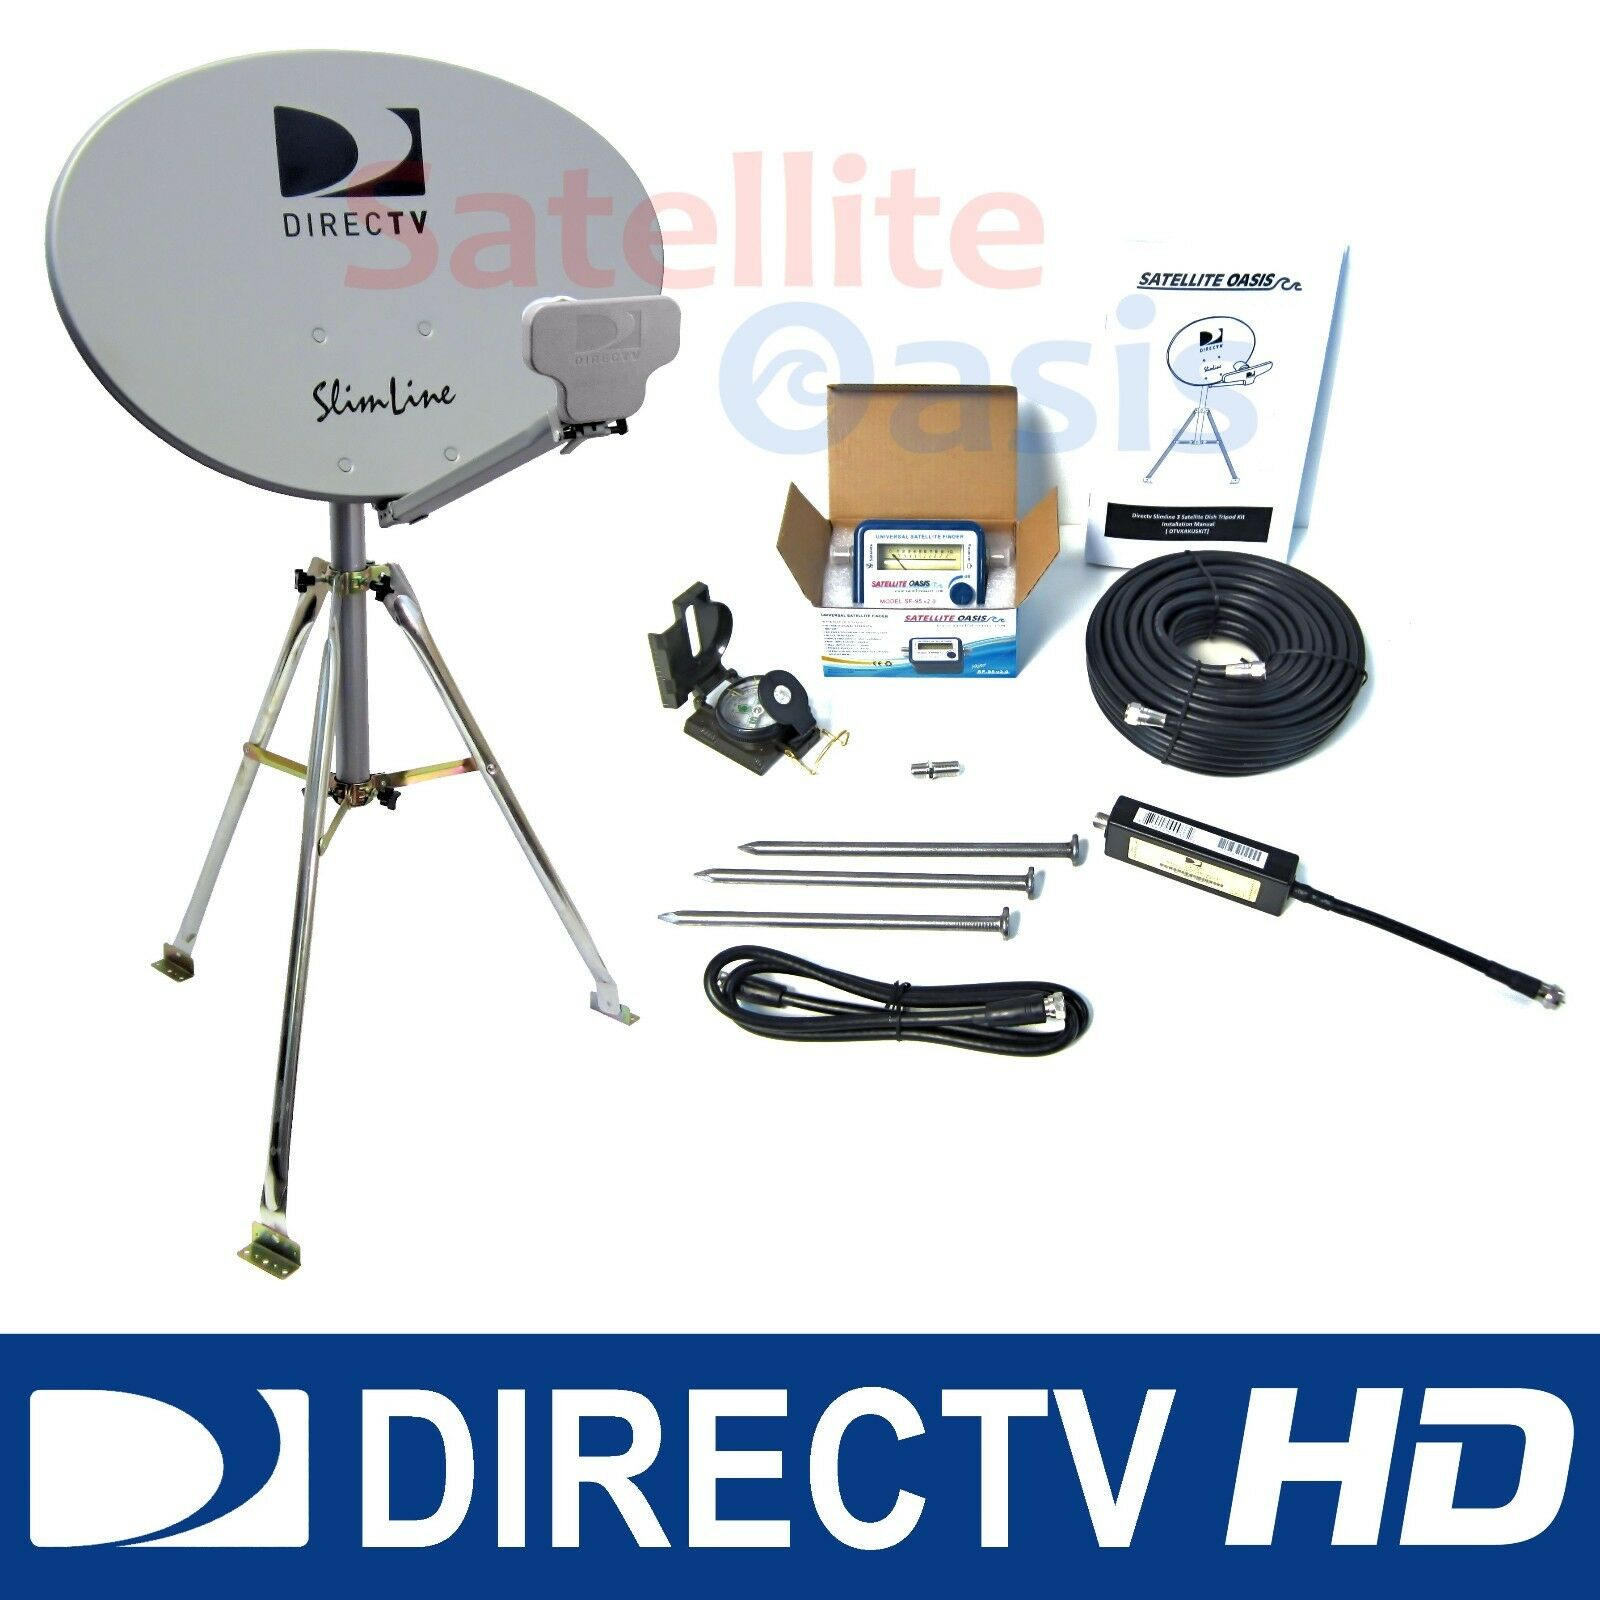 wiring diagram for directv hd dvr tjm dual battery system hdtv ad